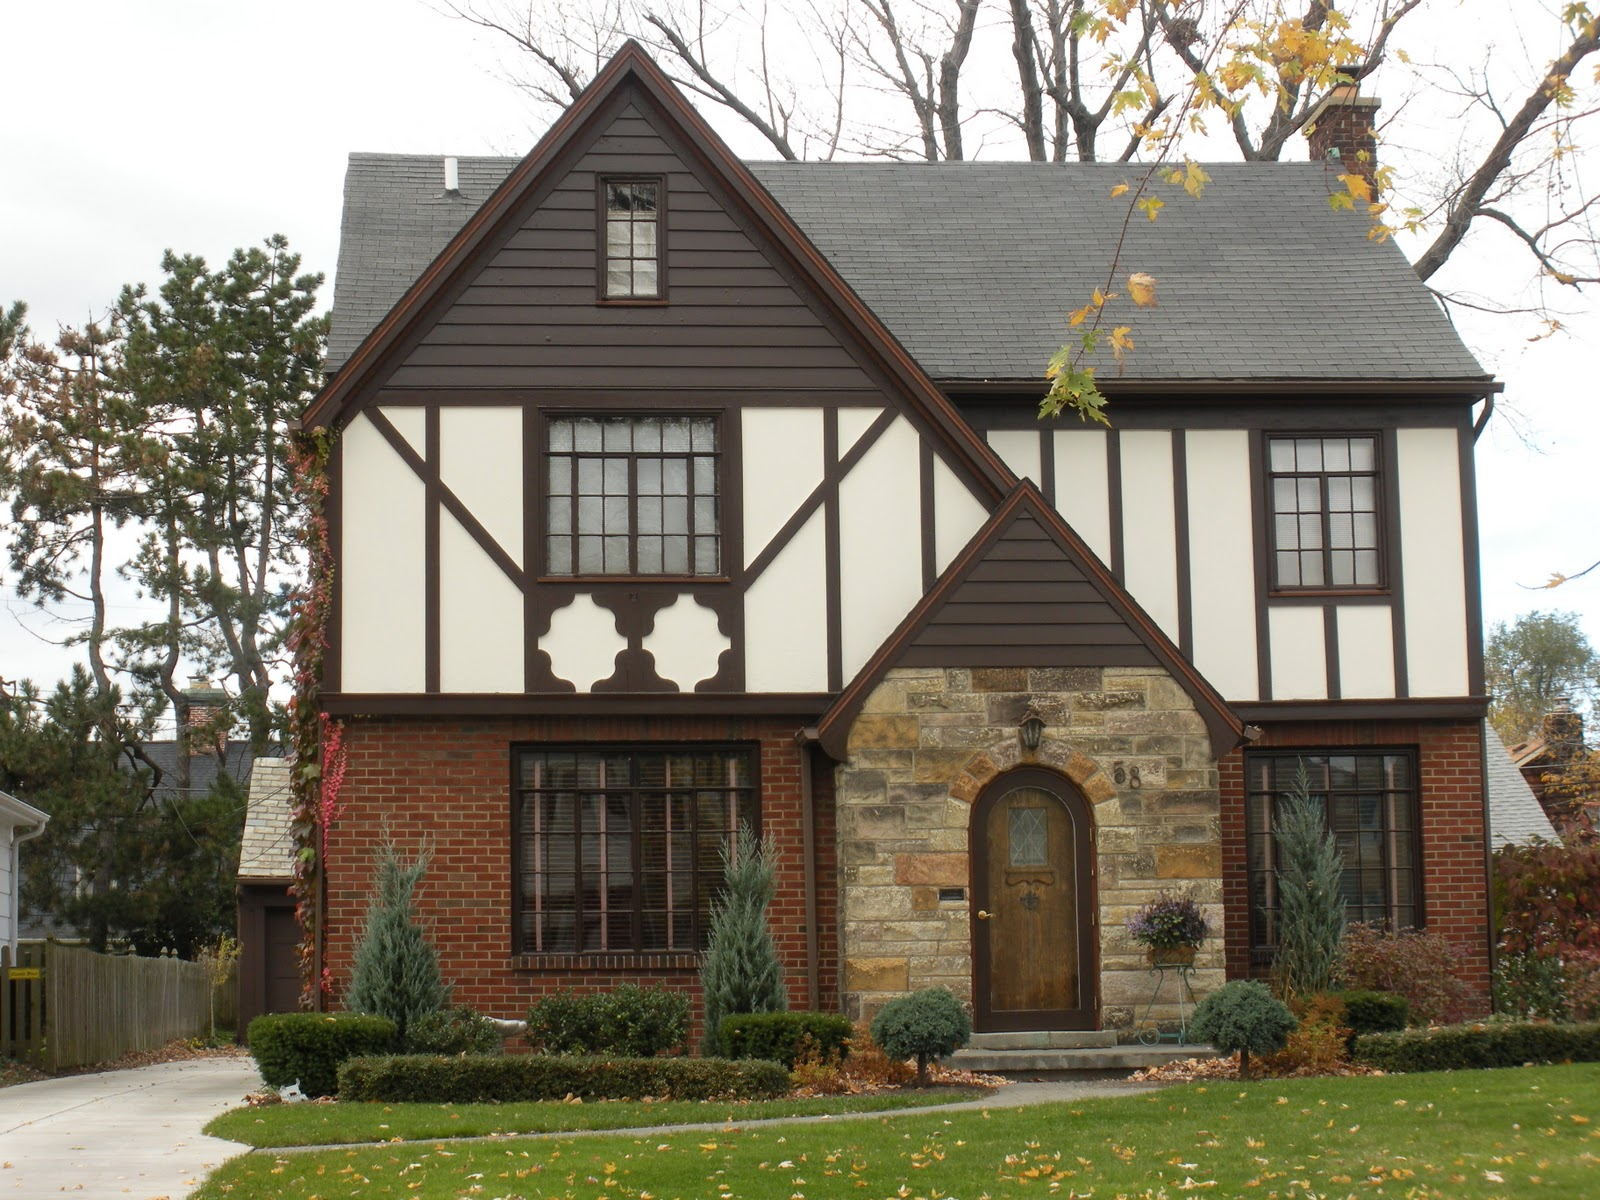 Reinventing the past housing styles of tudor ville and for Different building styles